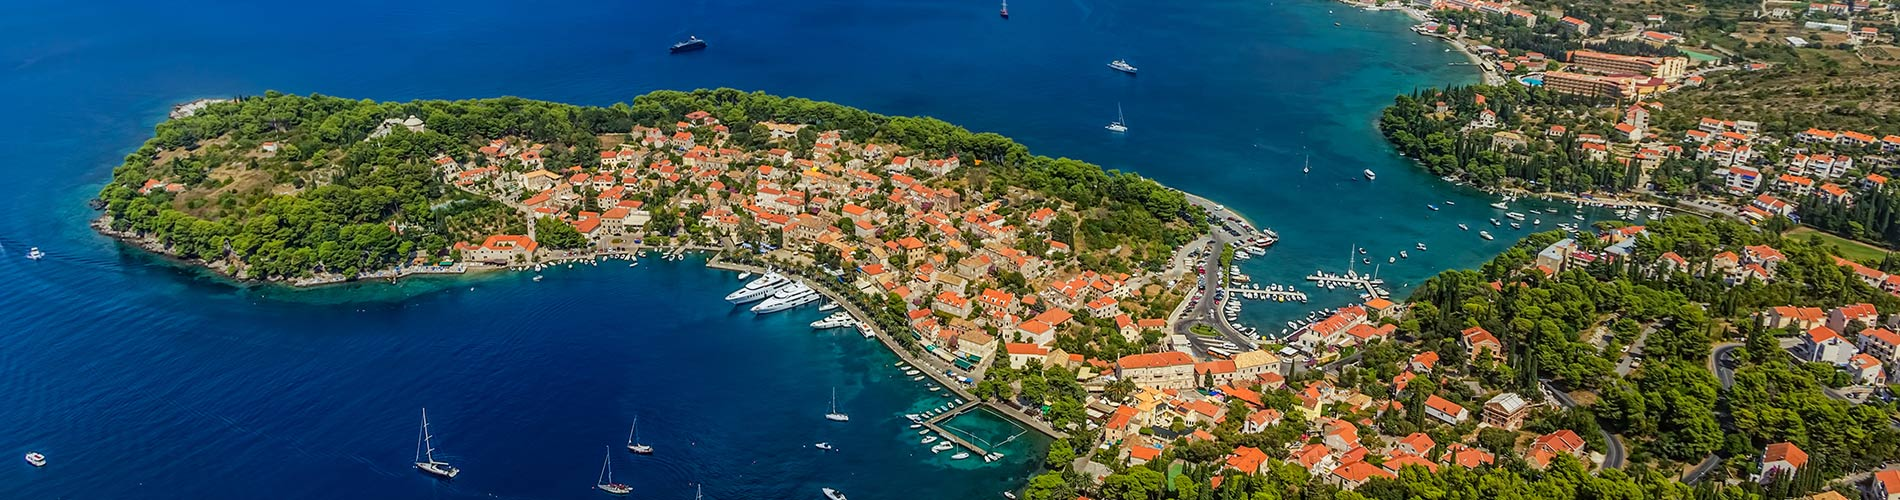 1Helicopter aerial shot of Cavtat.jpg